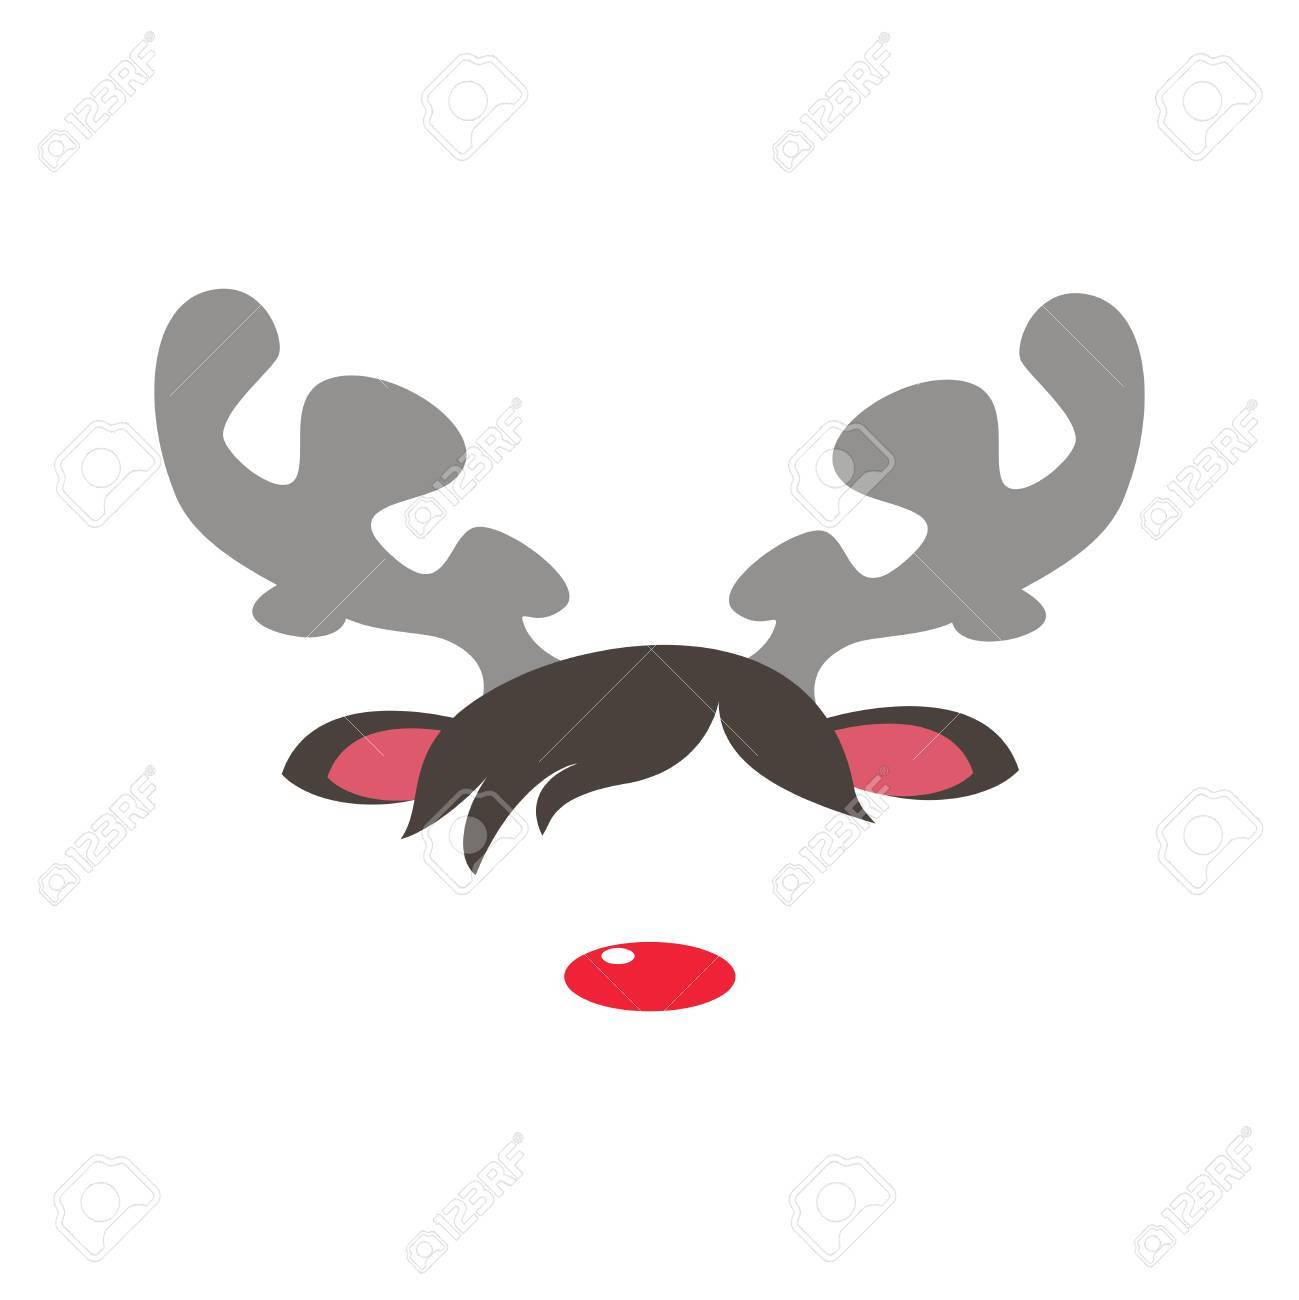 Carnival masks of rudolph reindeer red nose isolated white background. Vector cartoon illustration of christmas reindeer masquerade mask - 66460948